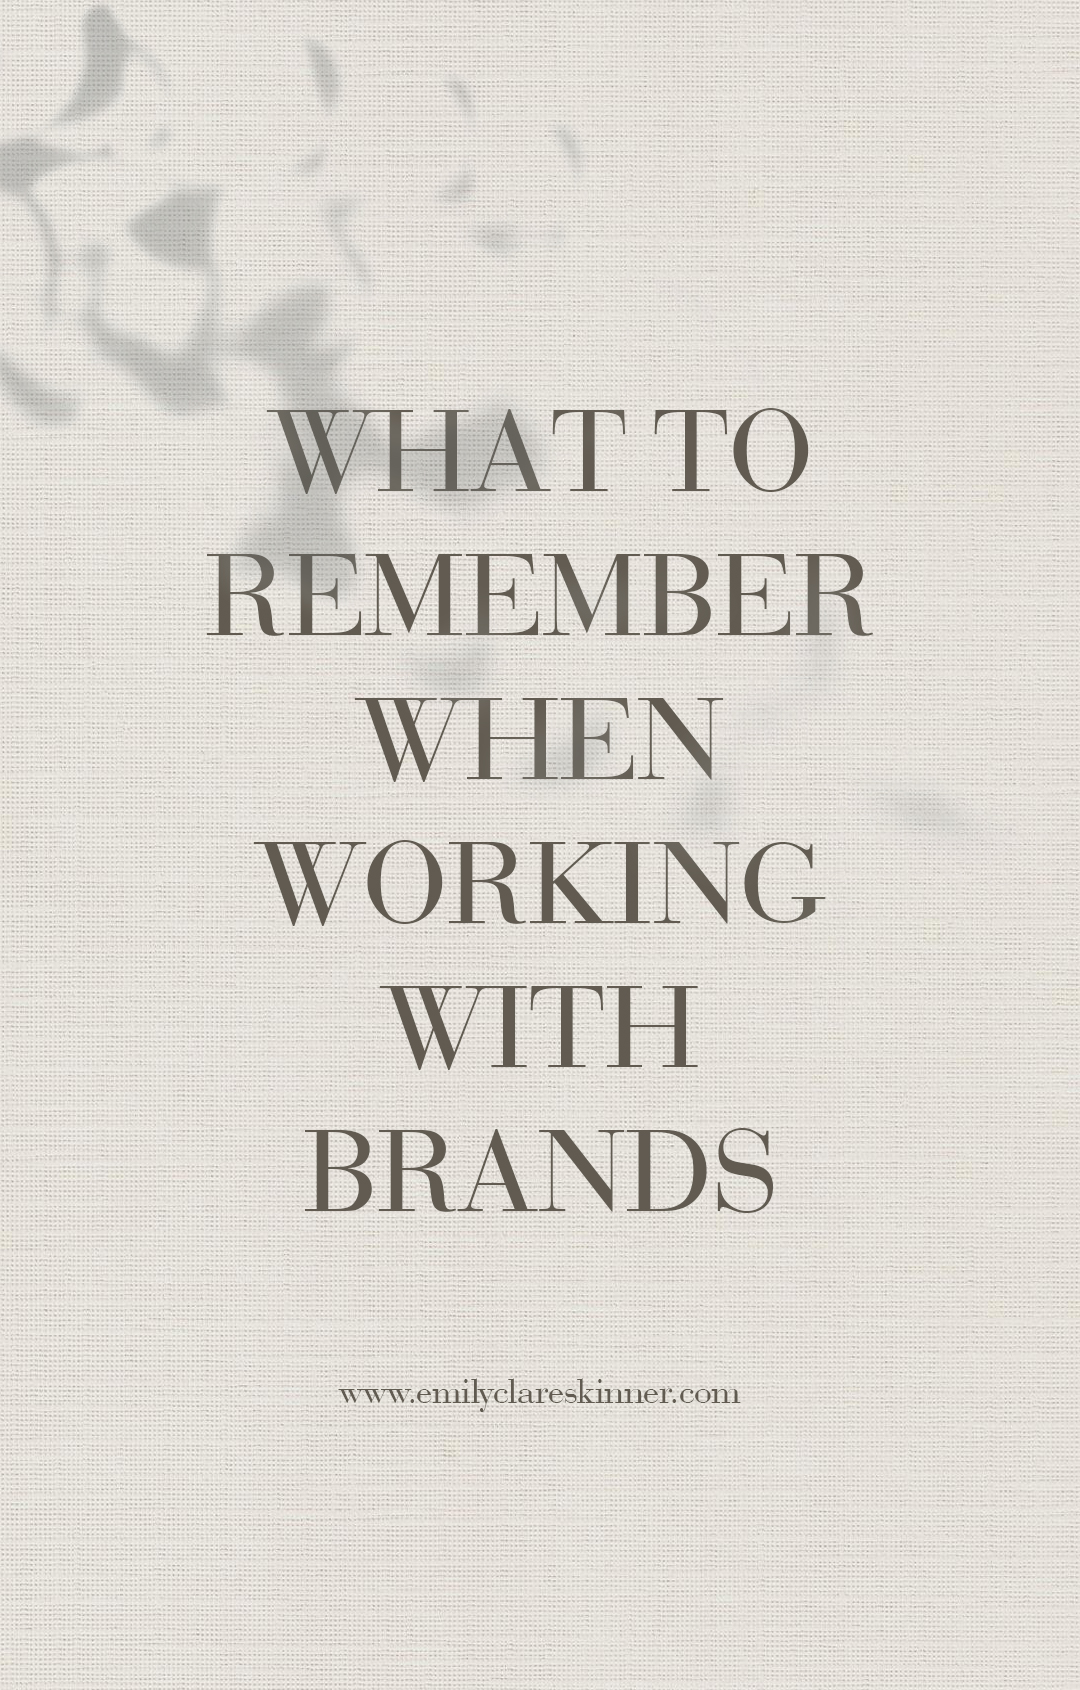 Working with brands is all fun and games when you are a blogger but you have to remember these important factors too…